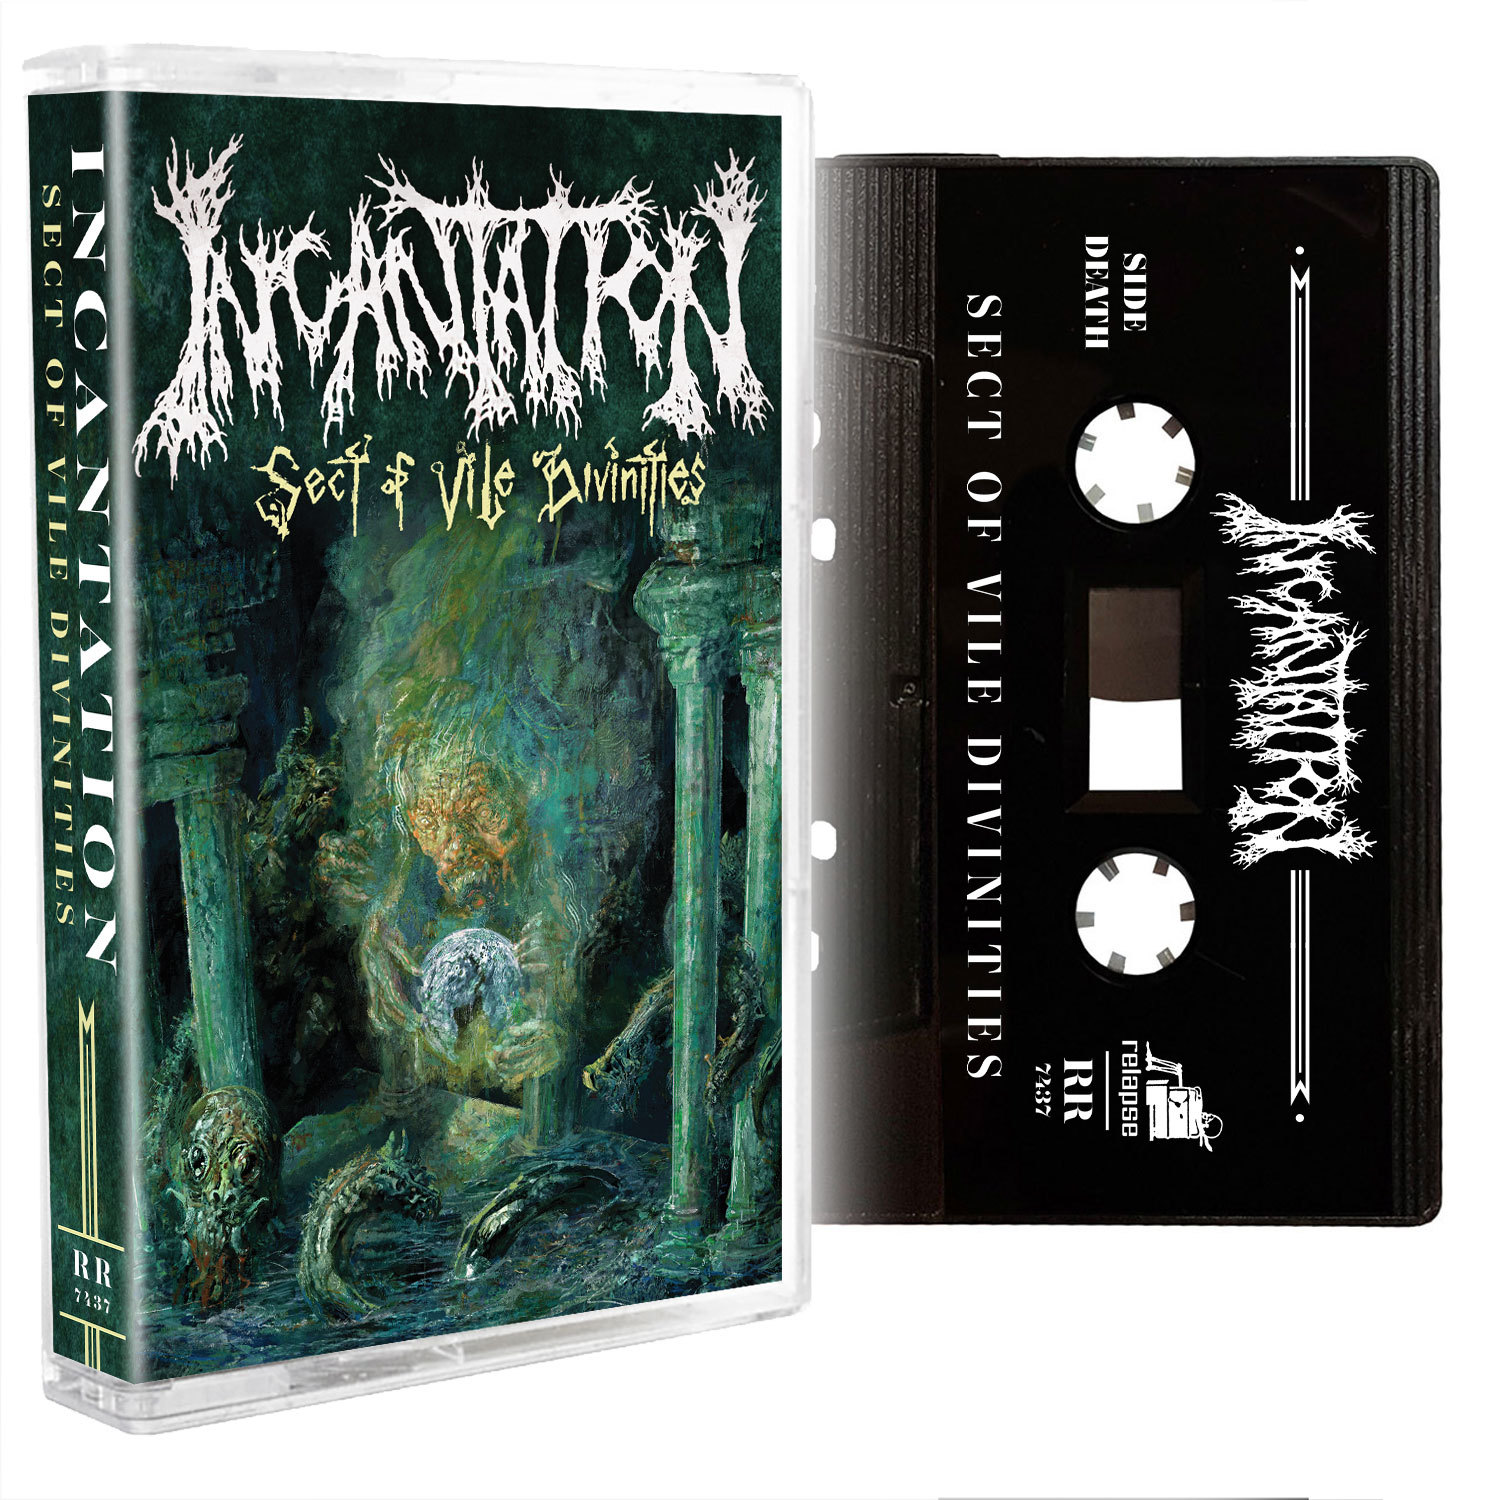 Incantation-Sect of Vile Divinities Tape